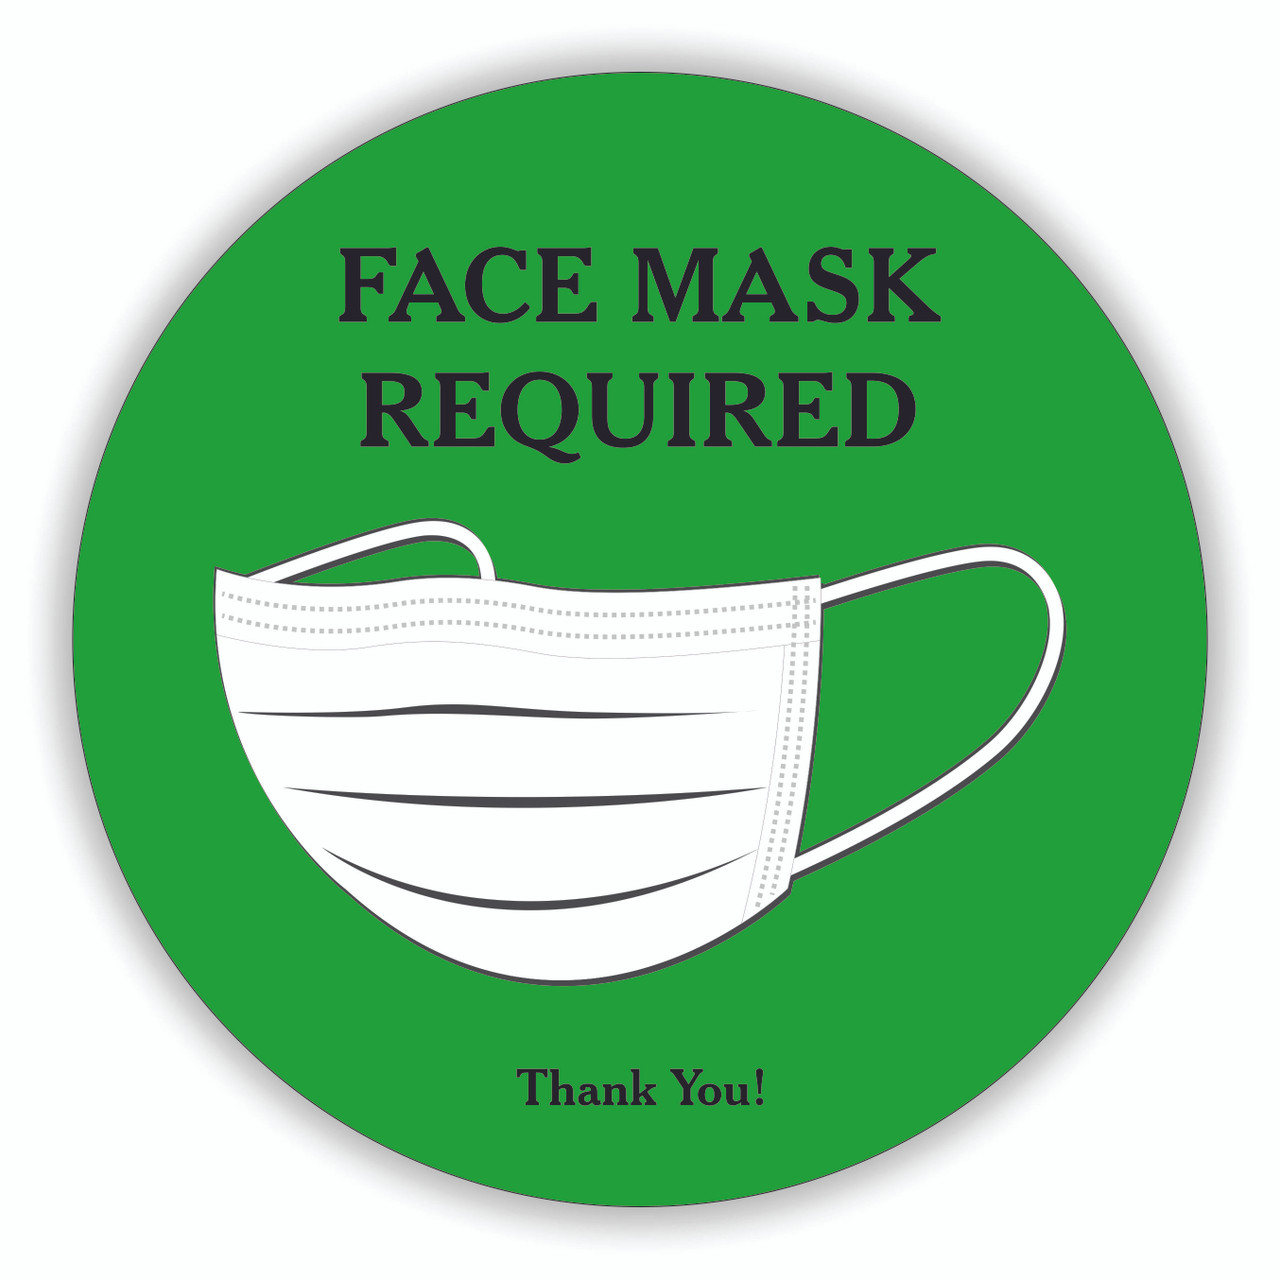 "Face Mask Required 8"" Round Decal Green 